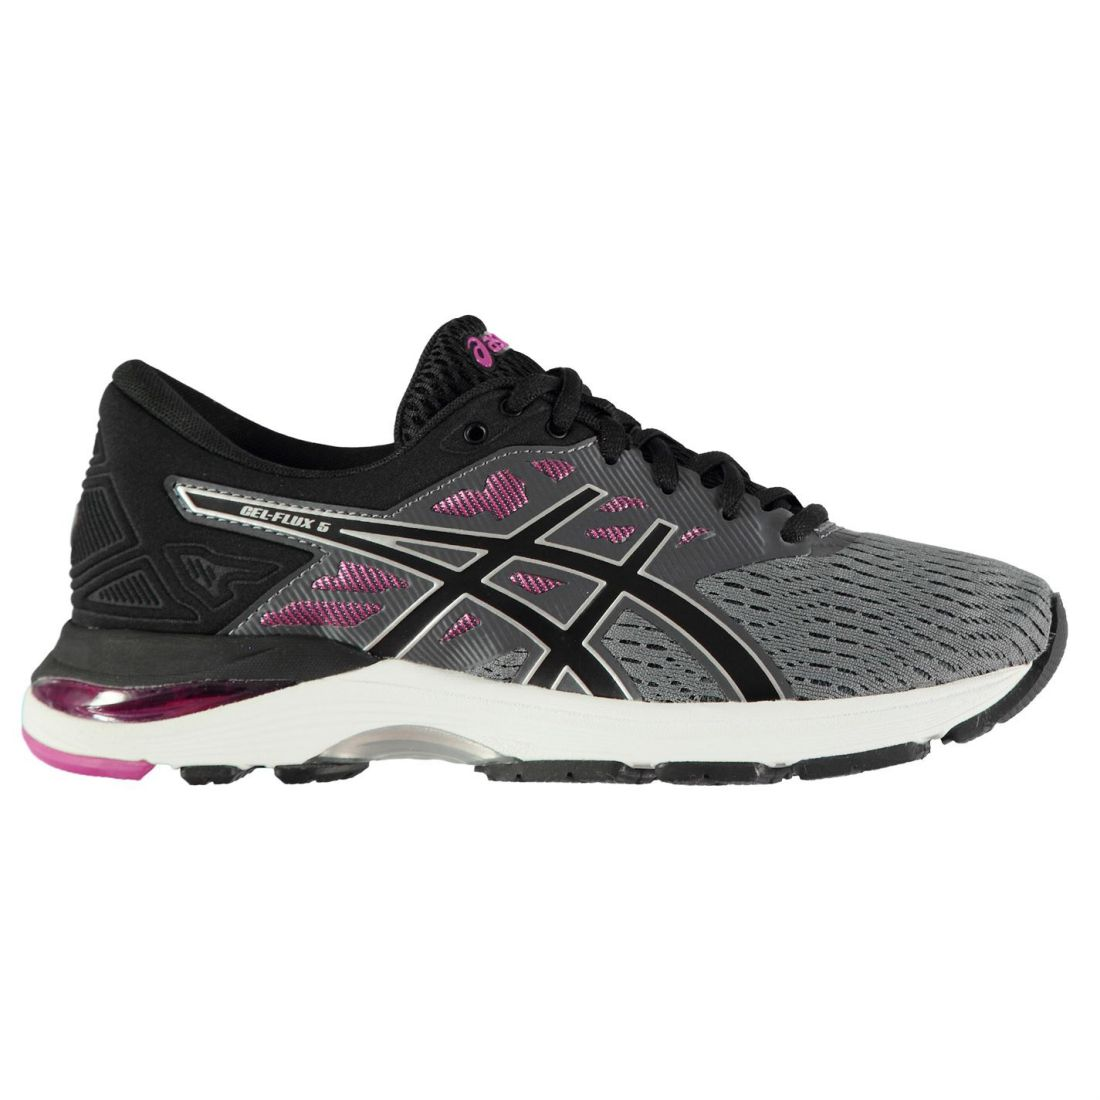 Asics Gel Flux 5 Running shoes Ladies Road Laces Fastened Ventilated Padded